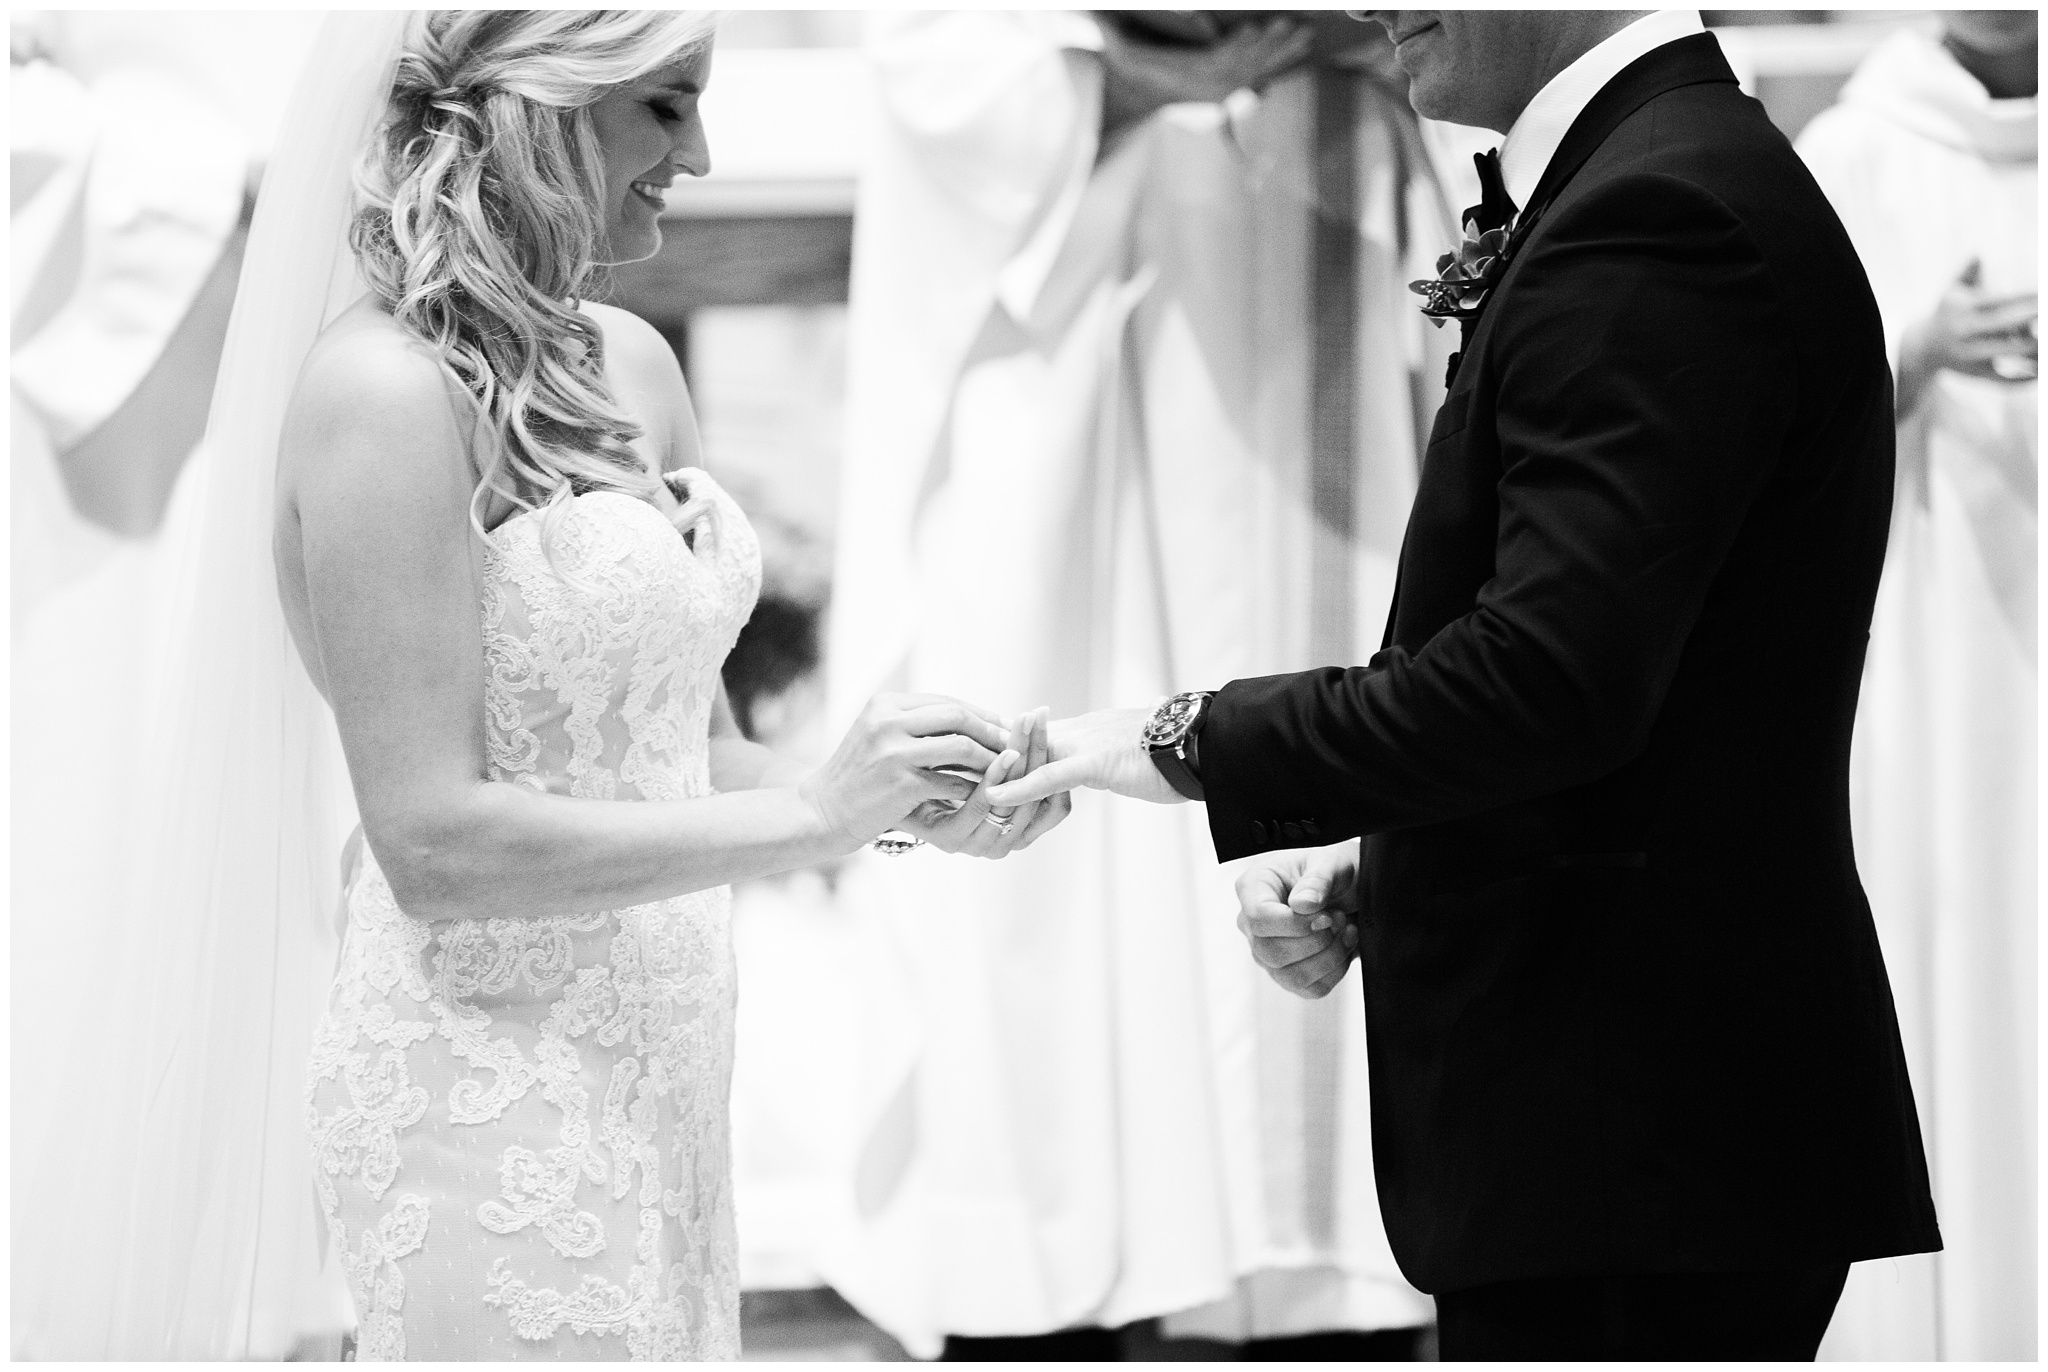 RebeccaHaleyPhotography_BarringtonPhotographer_ChicagoPhotographer_ChicagoWedding_0027.jpg